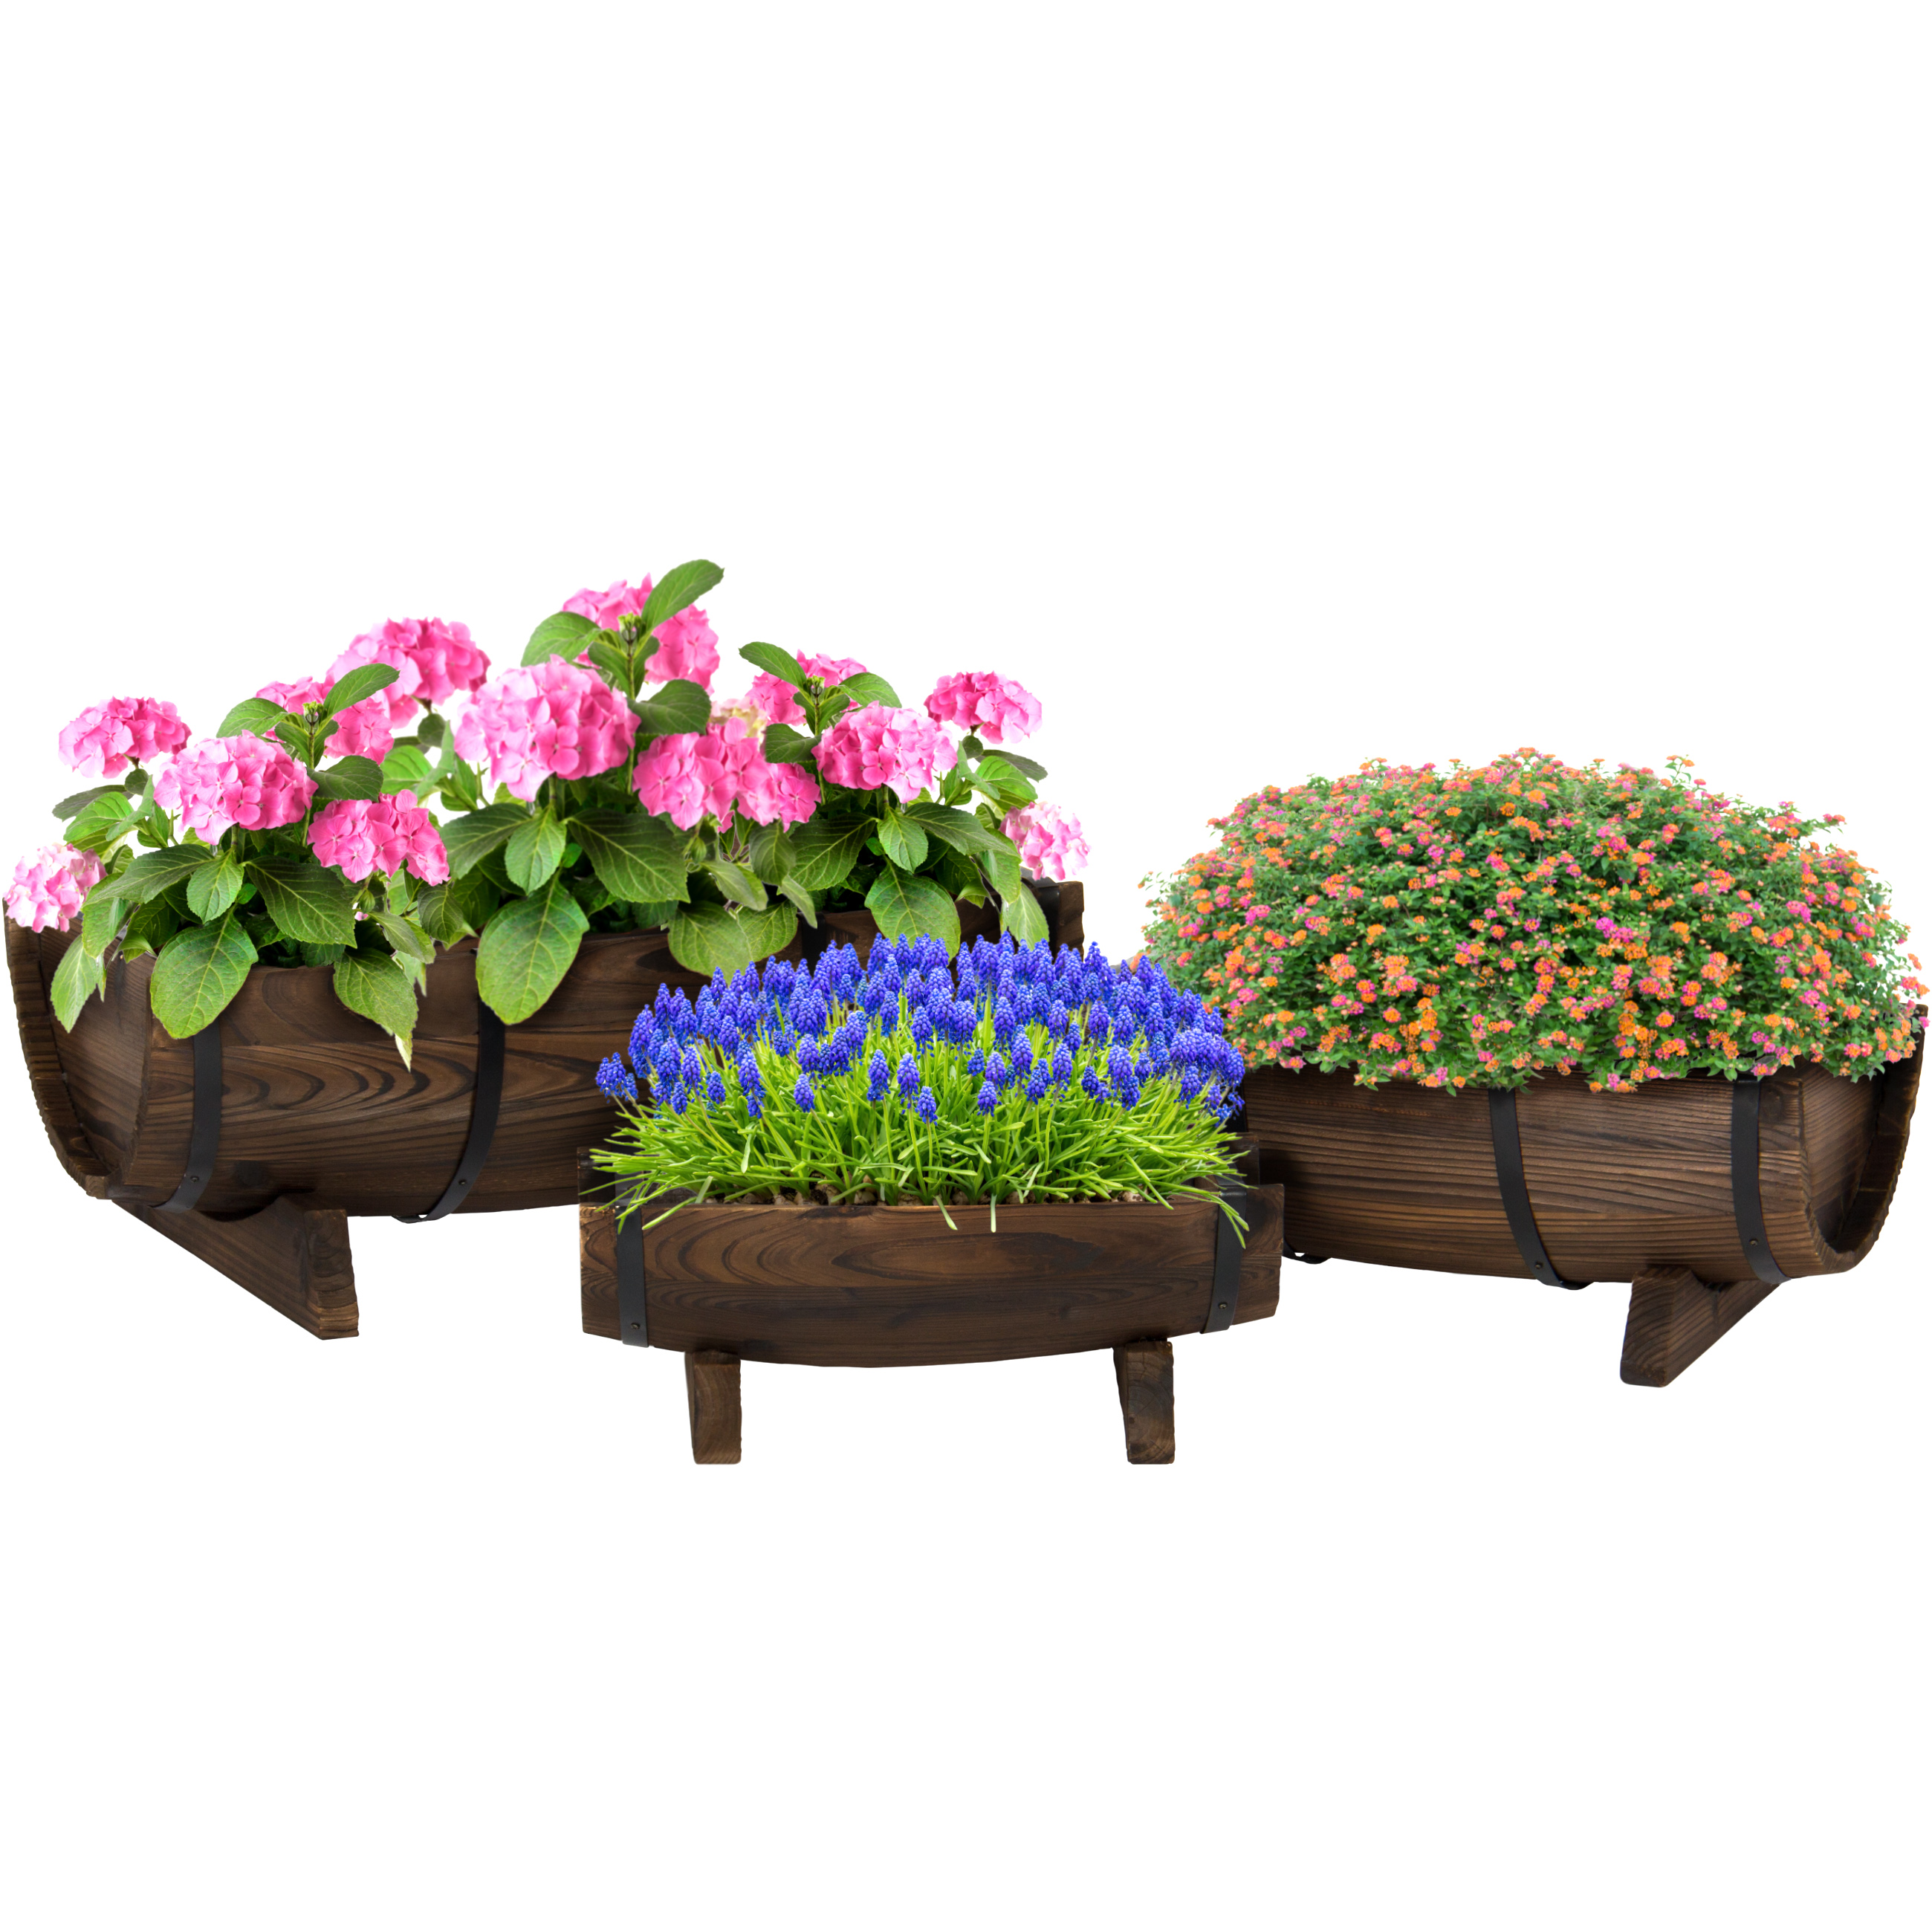 Best Choice Products Garden Decor Rustic Wood Set Of 3 Half Barrel Planter by Best Choice Products